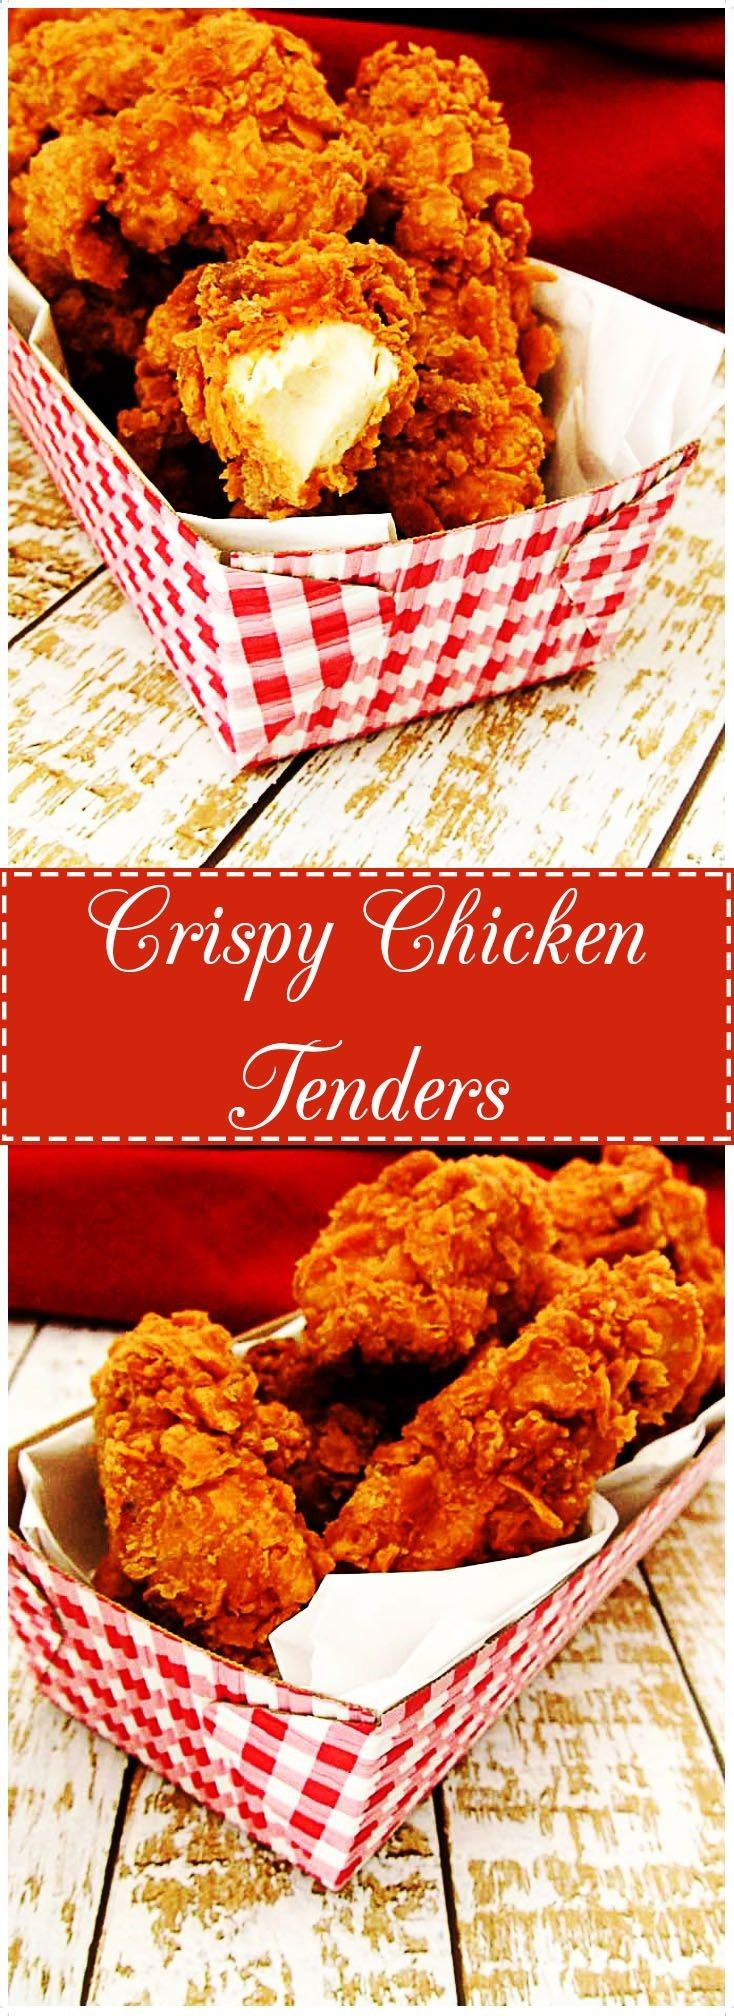 Crispy on the outside and juicy on the inside, these chicken tenders are full of flavor and texture. One bite of these and youll never want restaurant chicken nuggets again. via Berlys Kitchen | Food Blogger | Recipe and Content Development